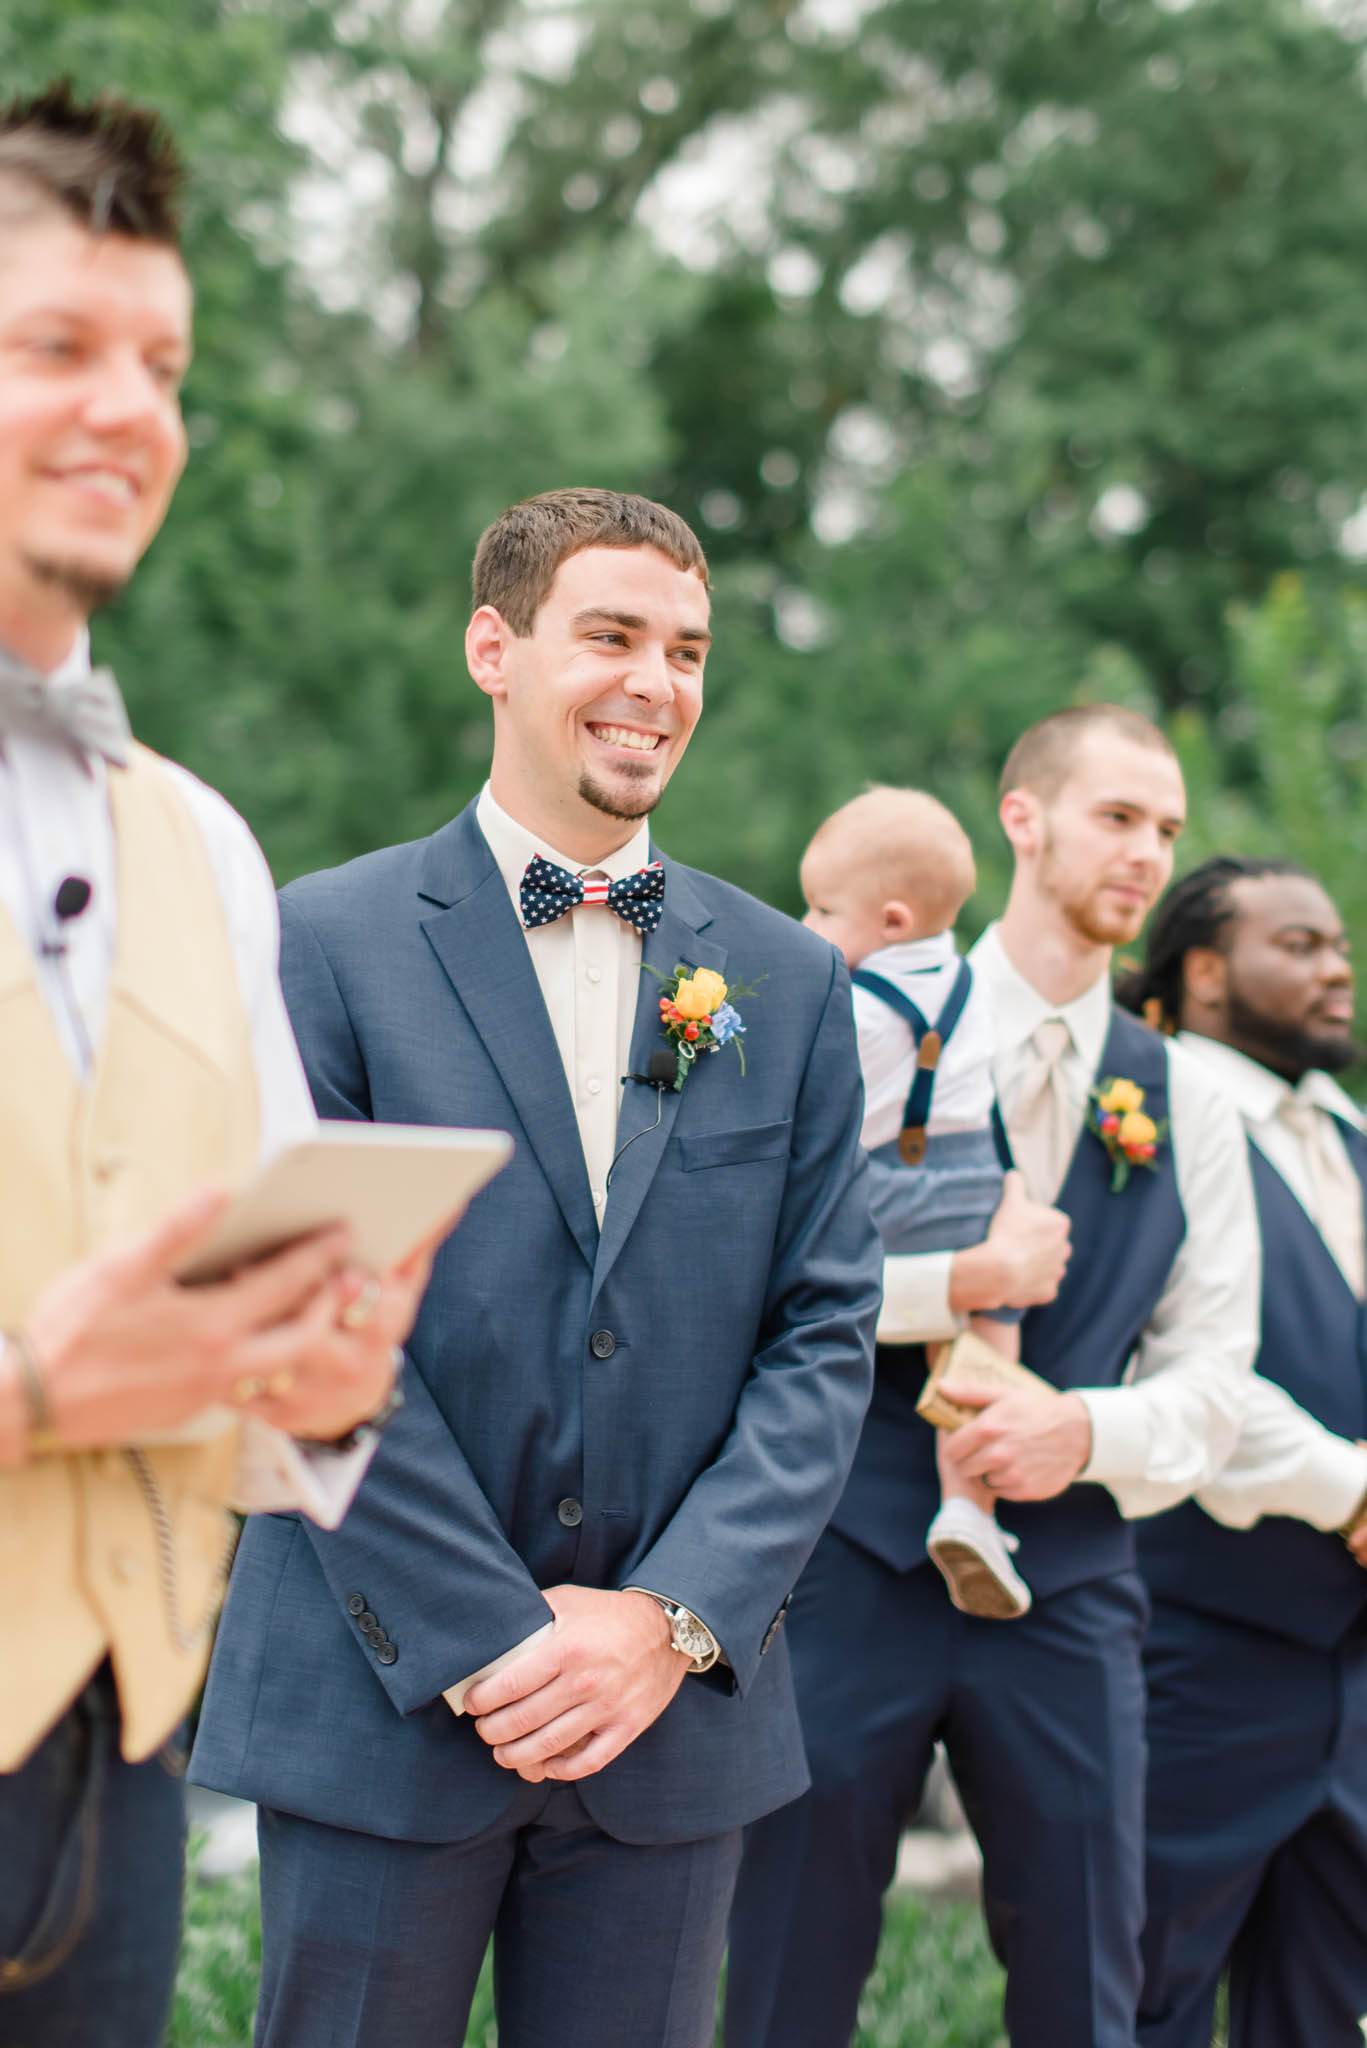 happy smiling groom at wedding ceremony in Knoxville